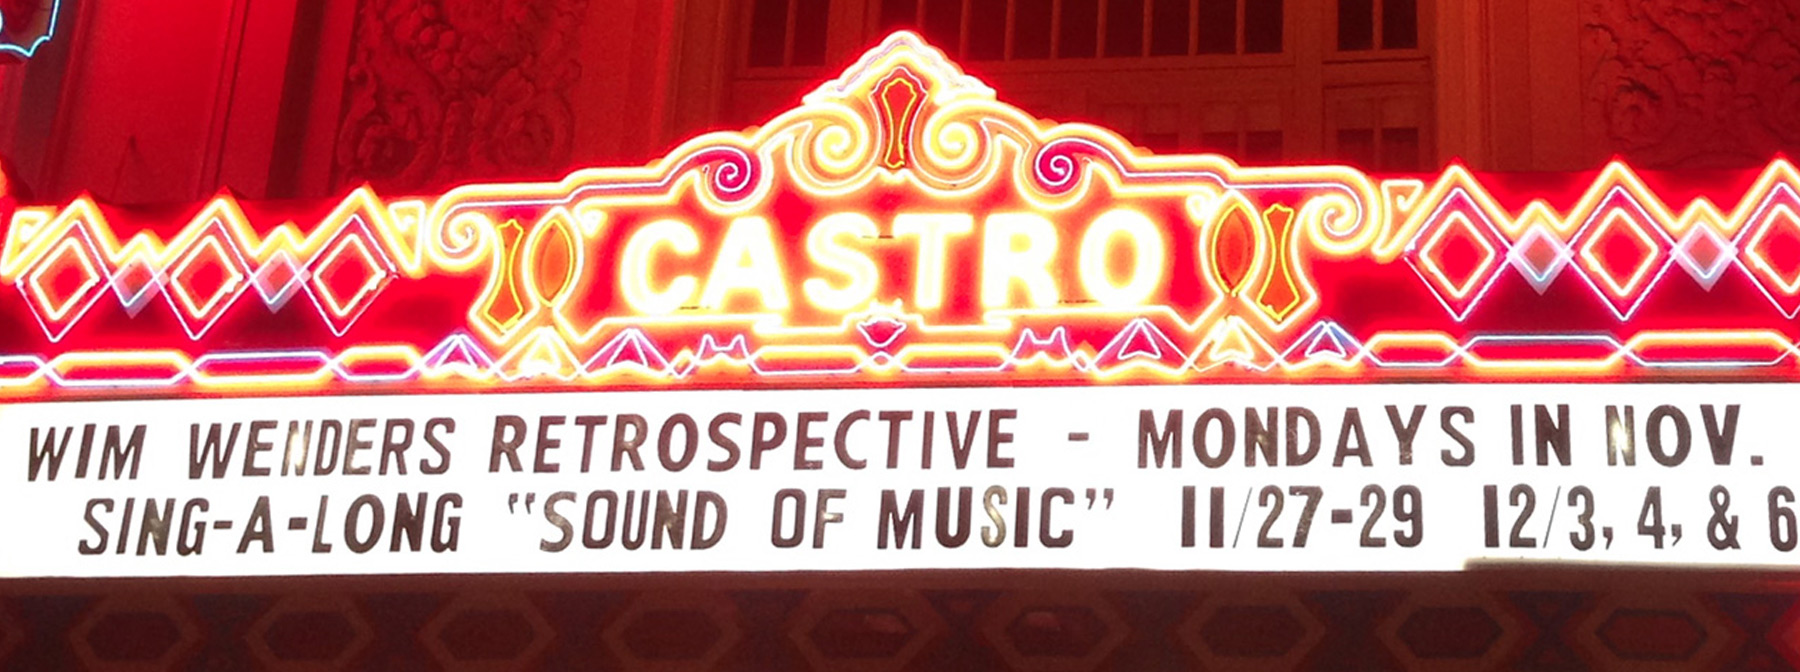 The marquee for the Castro Theater's annual German Film Festive